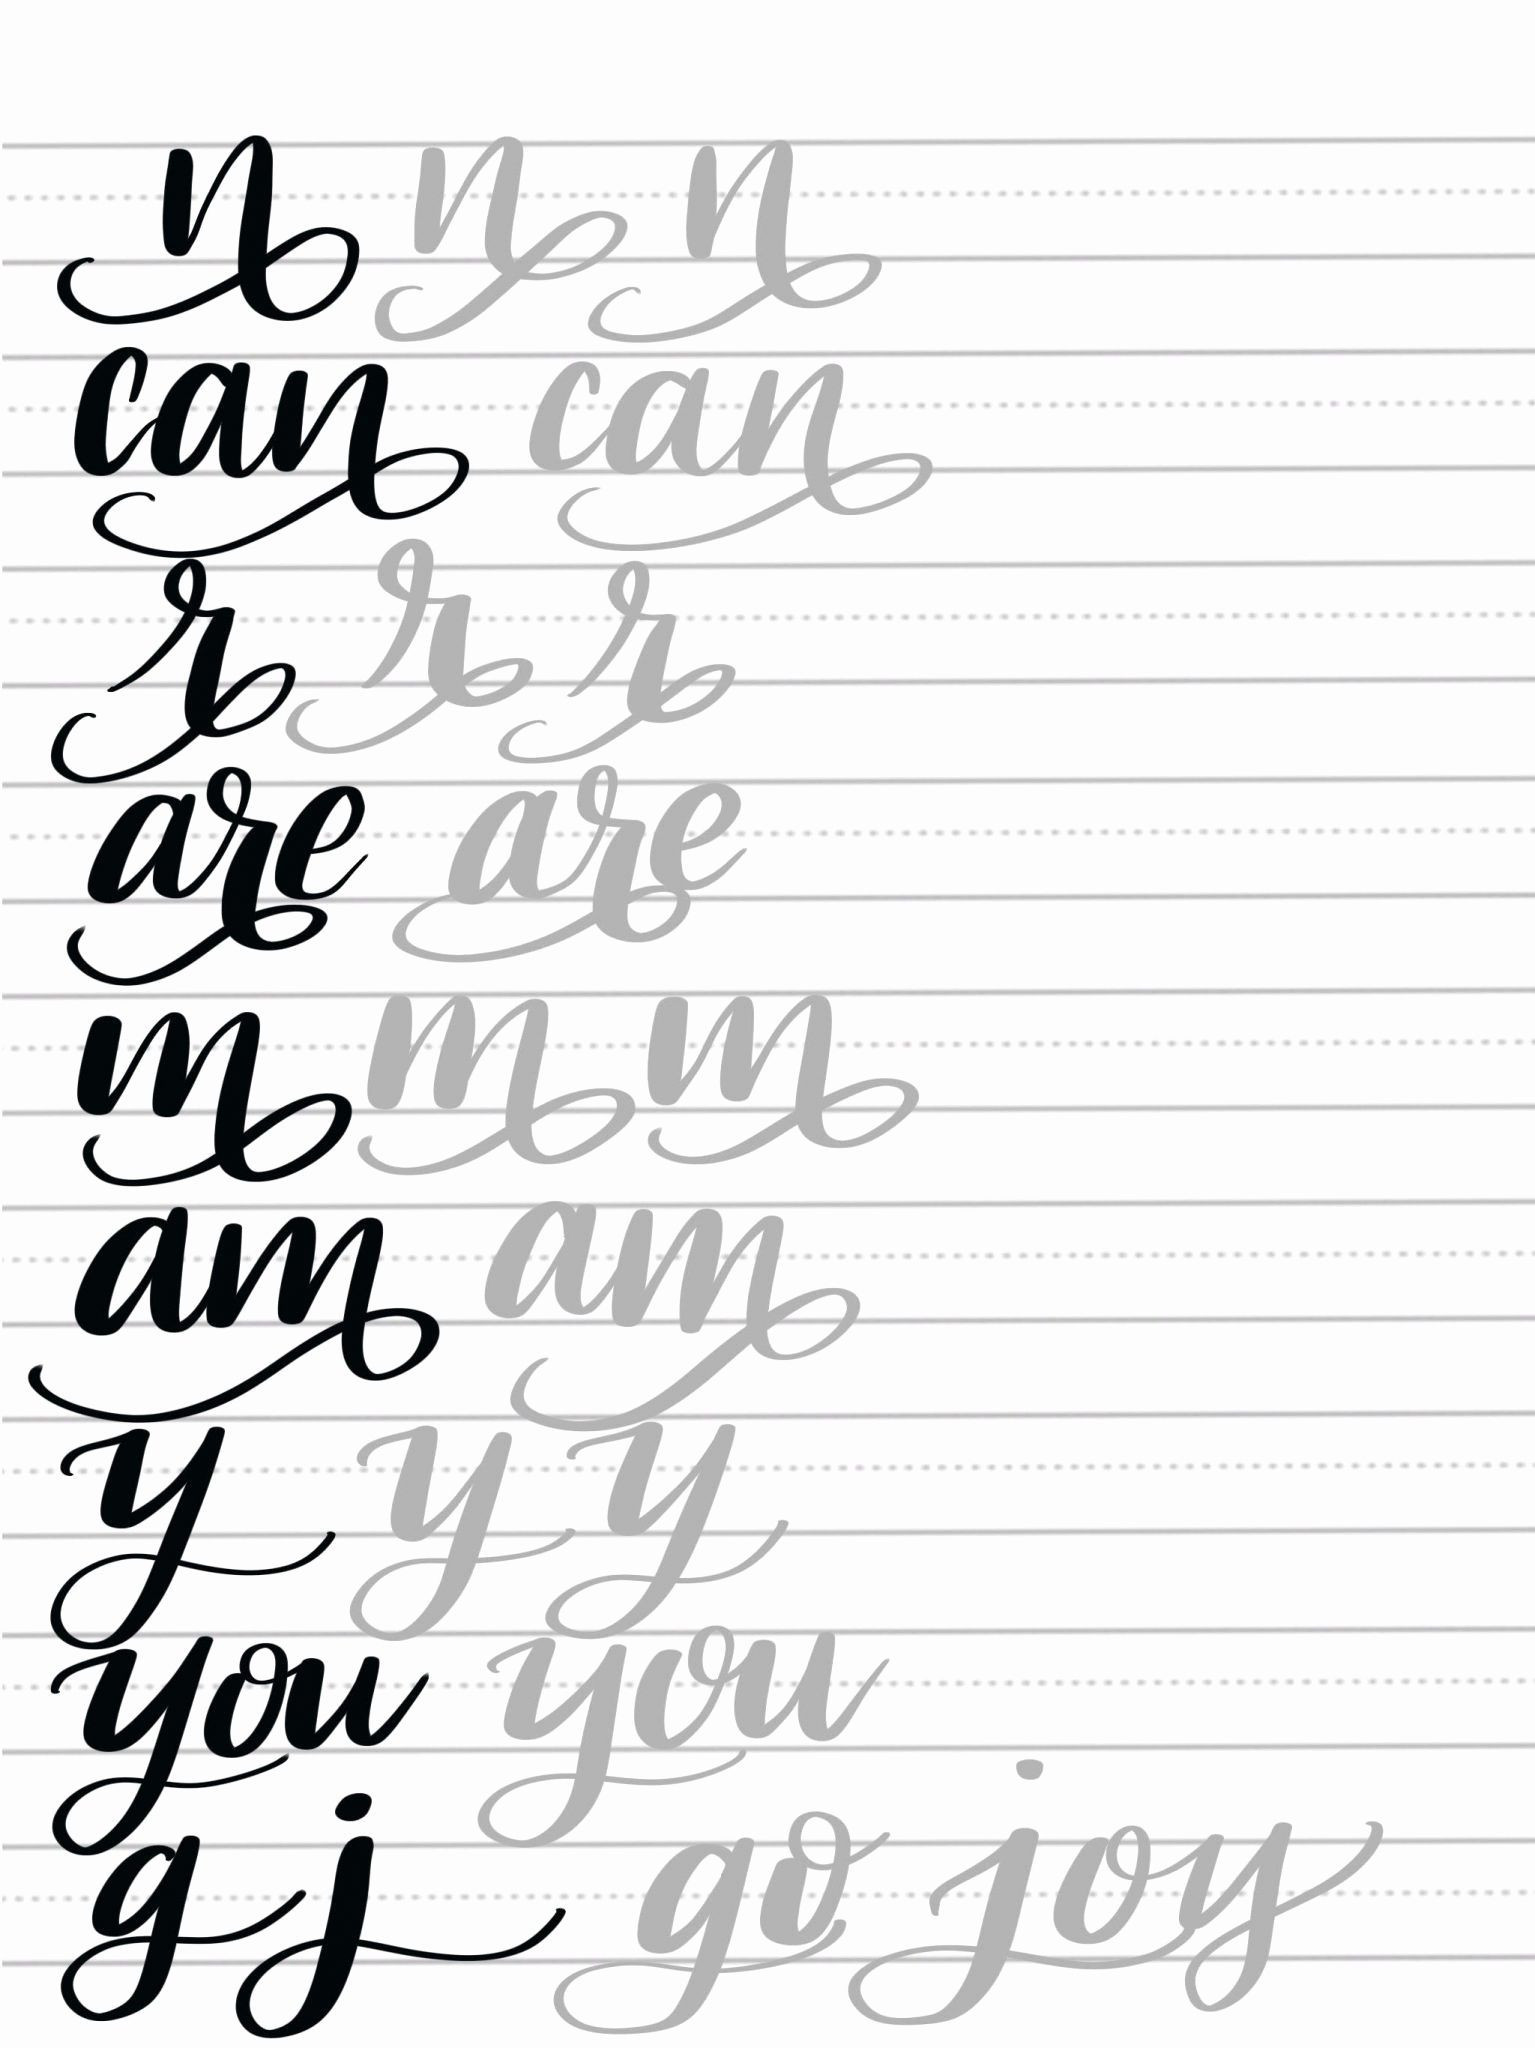 Free Calligraphy Worksheets Printable Free Alphabet Calligraphy to Free Download Free Calligraphy